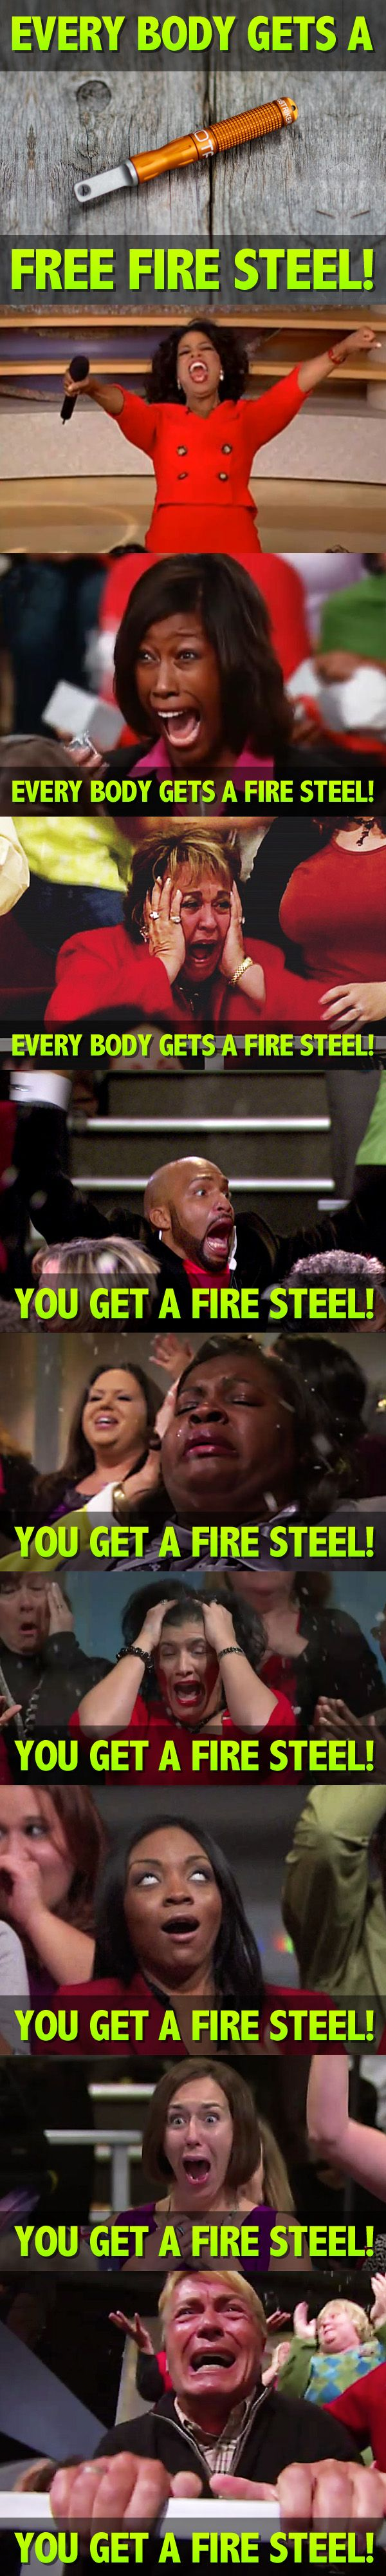 Have you claimed your FREE waterproof fire steel yet?? If not... what are you waiting for?? This awesome waterproof fire steel retails for as much as $36.99!! Claim yours for FREE today before they are gone!! Limited time offer!! firesteel.equip2survive.com